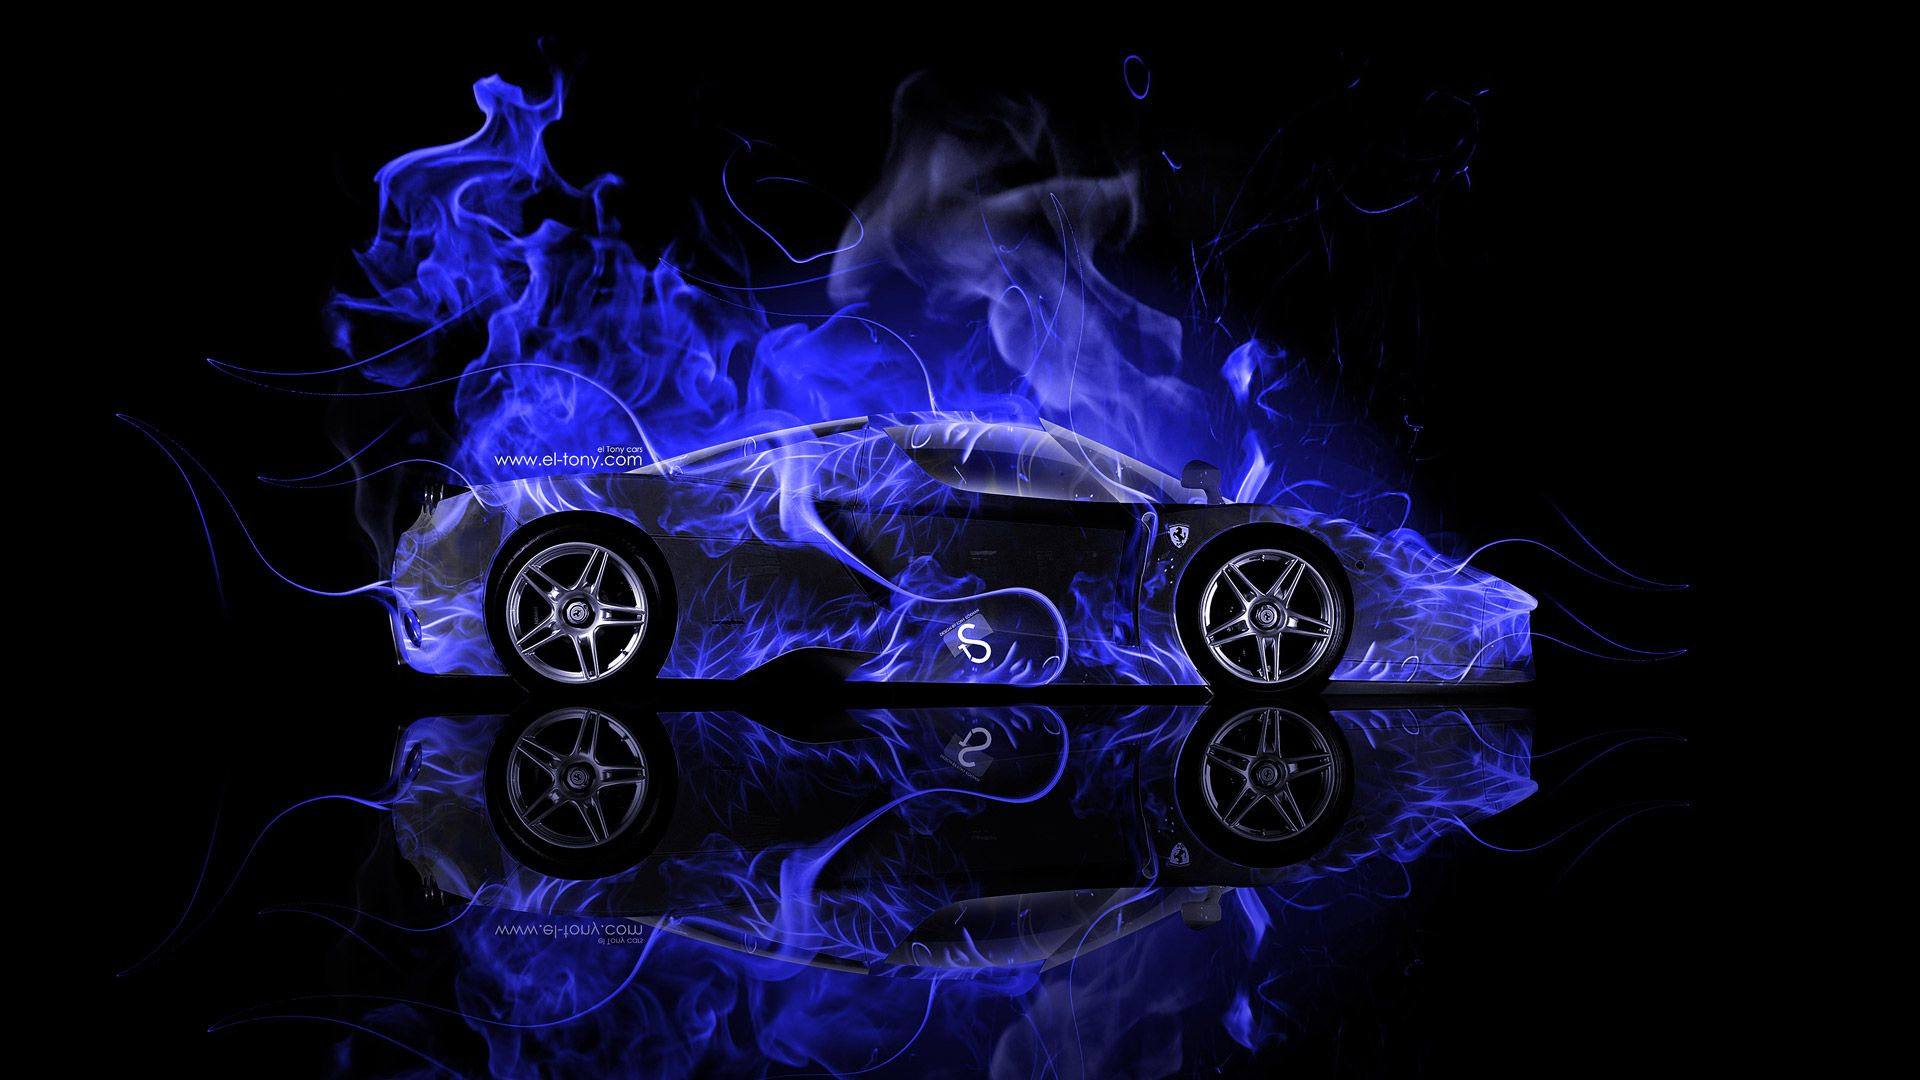 Lamborghini aventador side fire abstract car 2014 hd wallpapers design - Dodge Charger Rt Muscle Side Blue Fire Abstract Car 2014 Art Hd Wallpapers Design By Tony Kokhan Www El Tony Com_ Jpg 1920 1080 Dodge Chargers